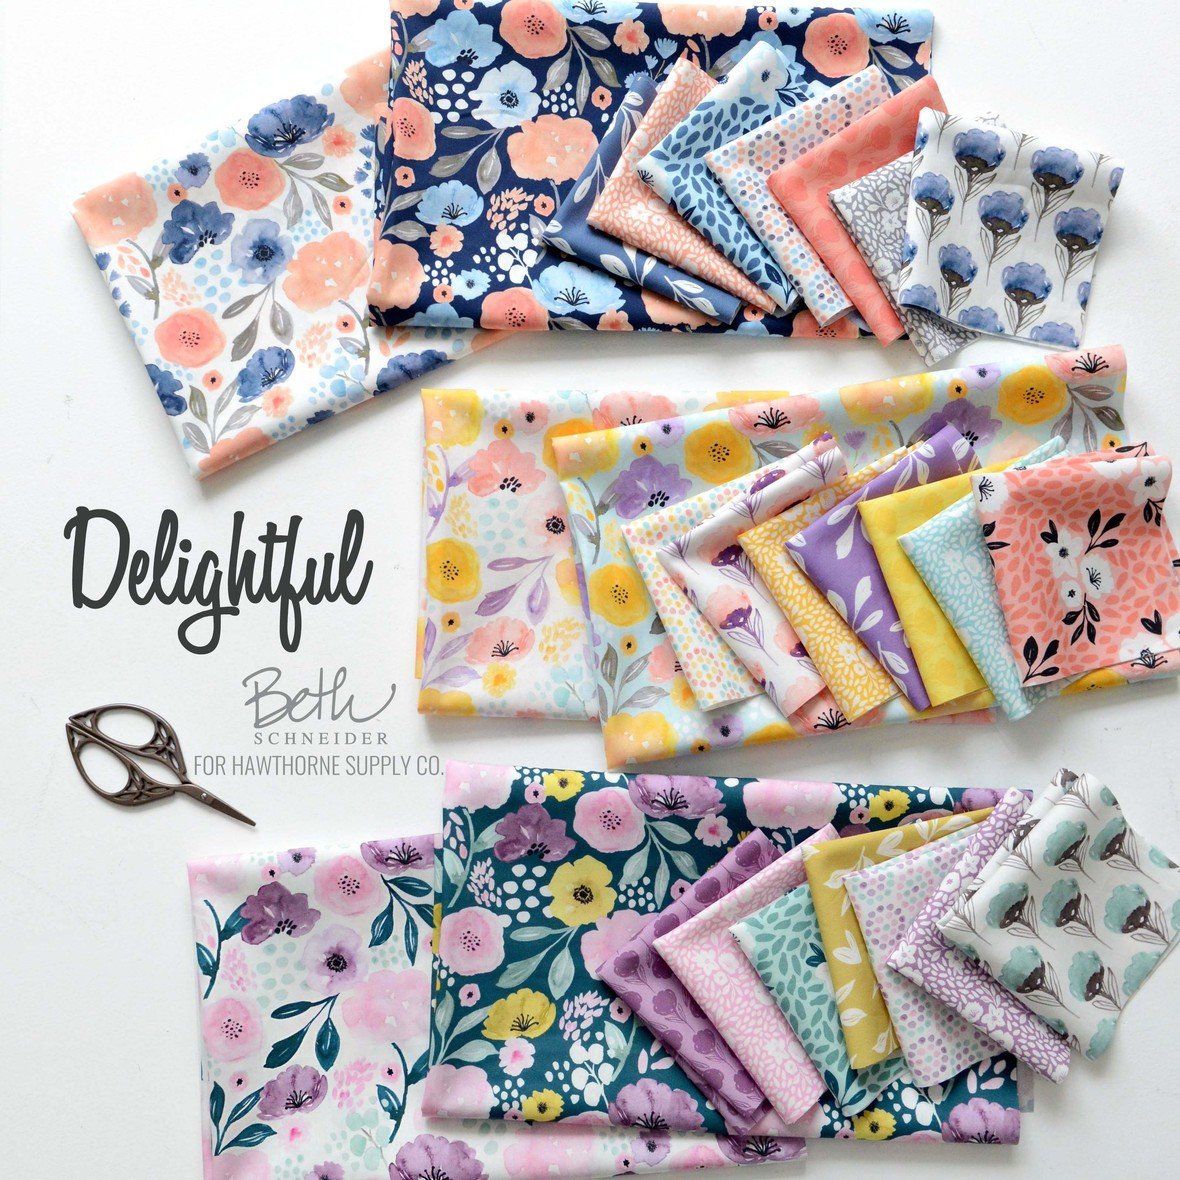 Delightful Fabric Poster 2 Beth Schneider Designs for Hawthorne Supply Co